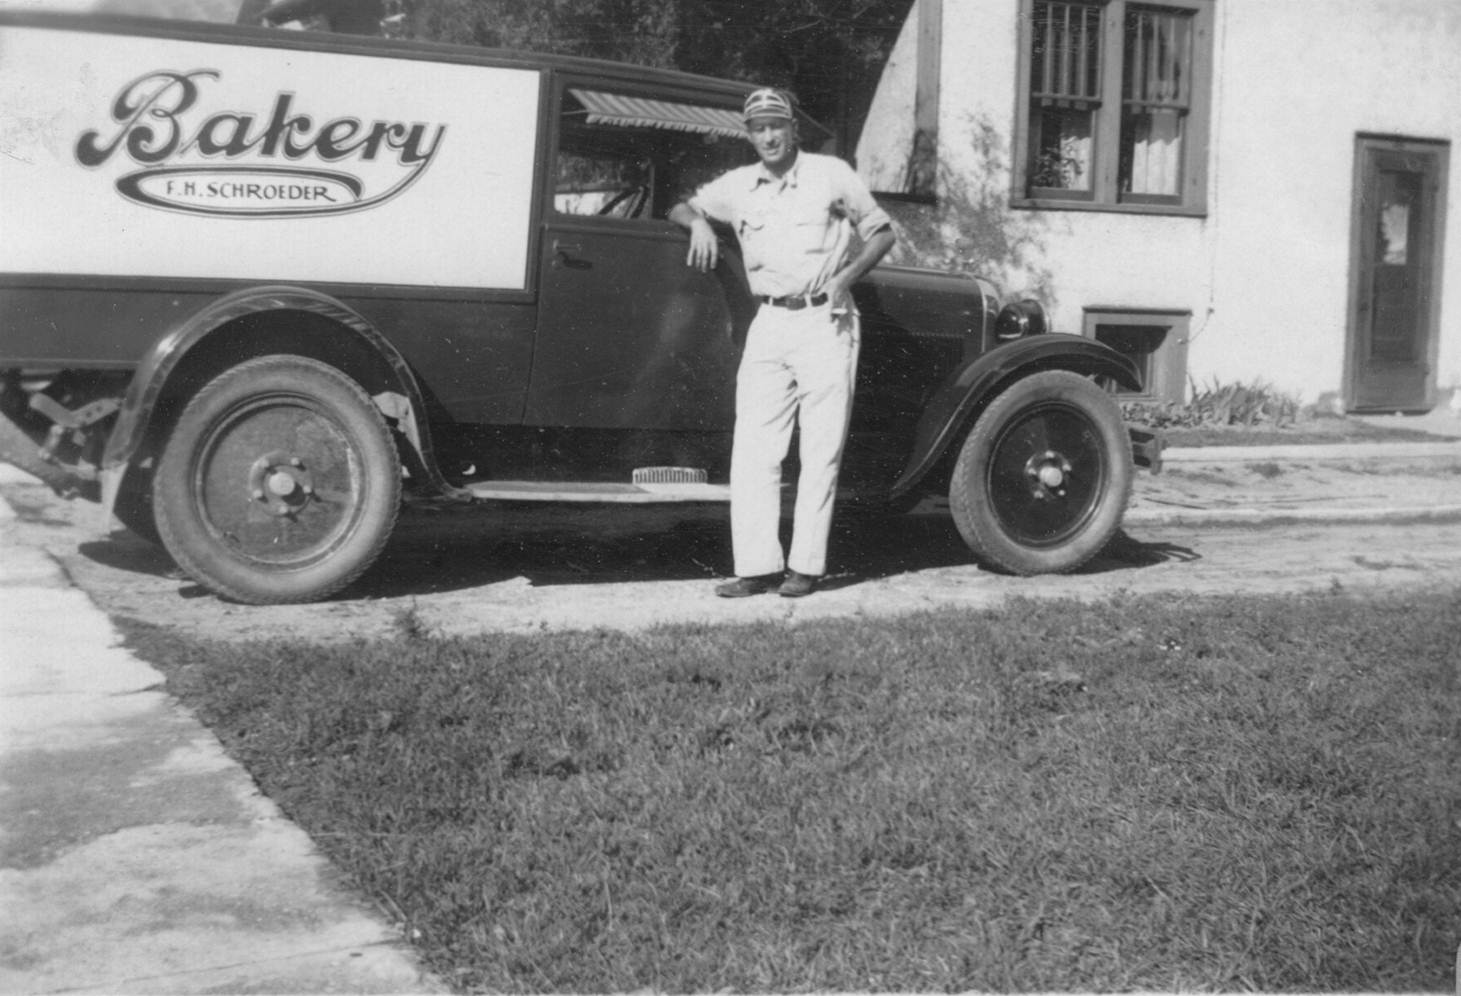 Fred Schroeder poses in front of his mobile pie truck. (Courtesy of CHC/Shirley Cherkasky)